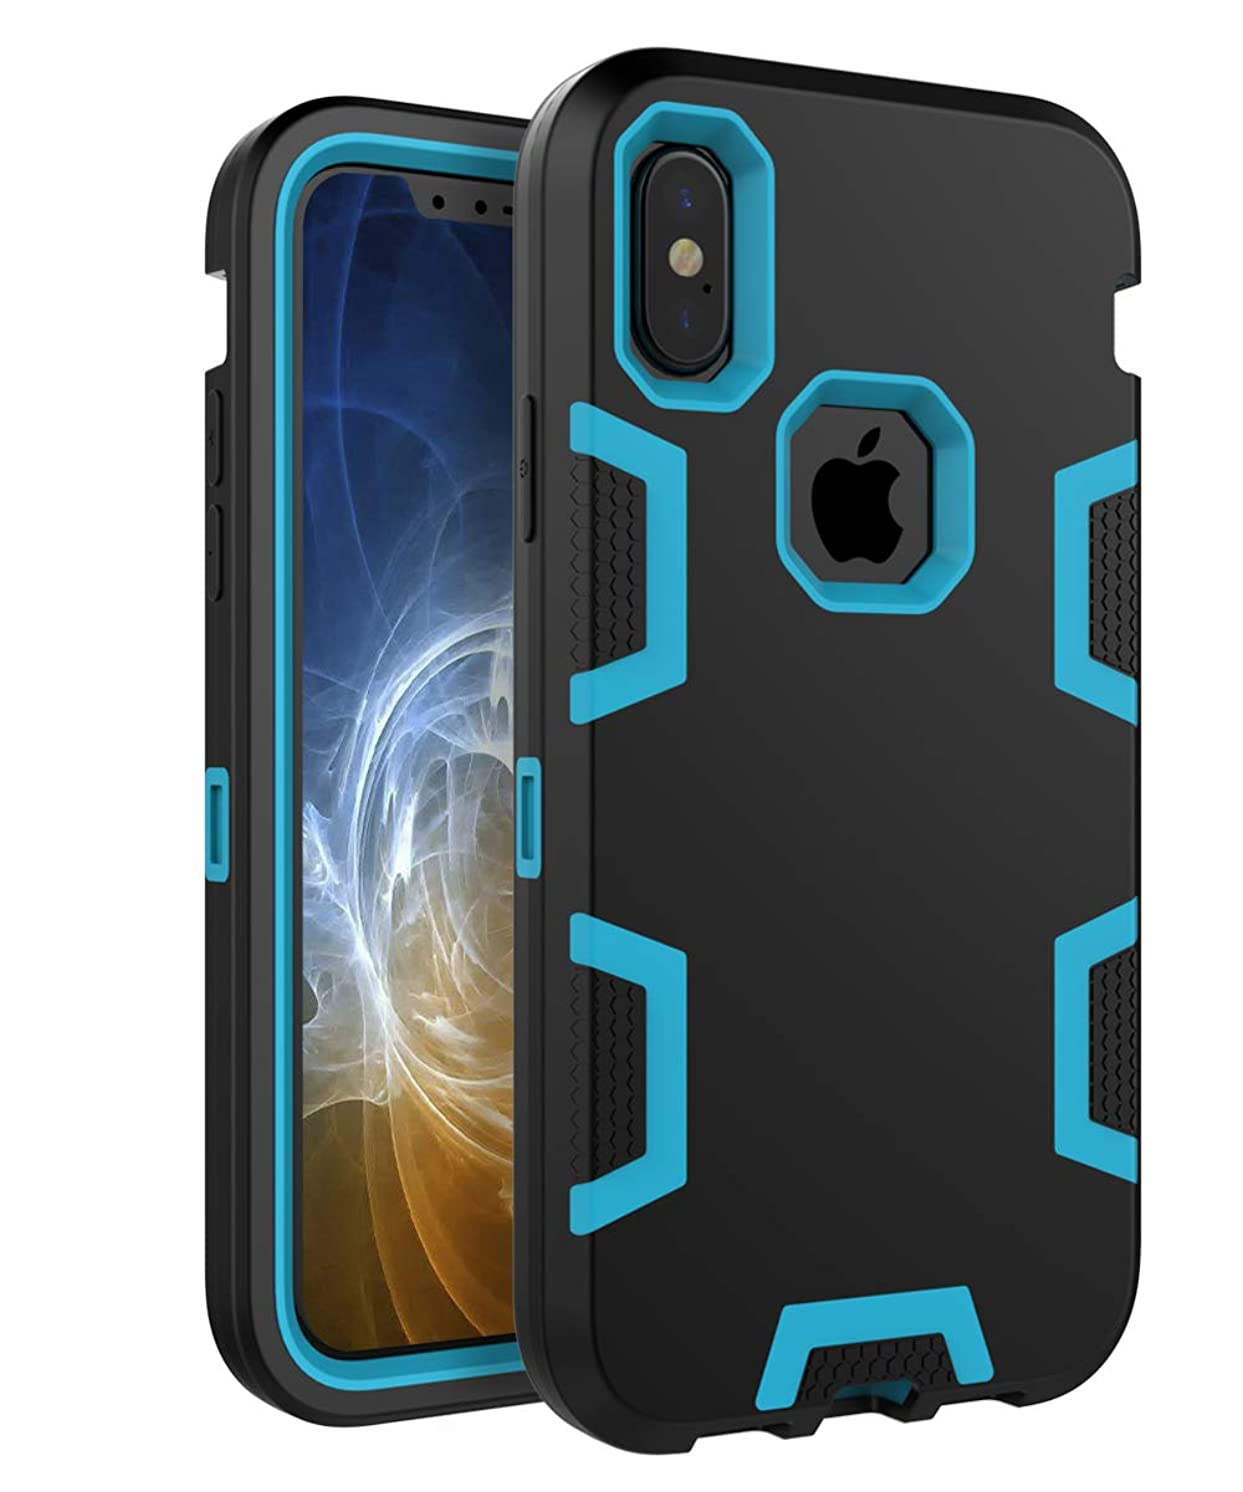 iPhone Xs Case iPhone X case TIANLI Three Layer PC + Silicone Rubber Hybrid Shockproof Protective Cover for iPhone Xs 2018/X 2017 - Black Blue lbedxzgyjb0014